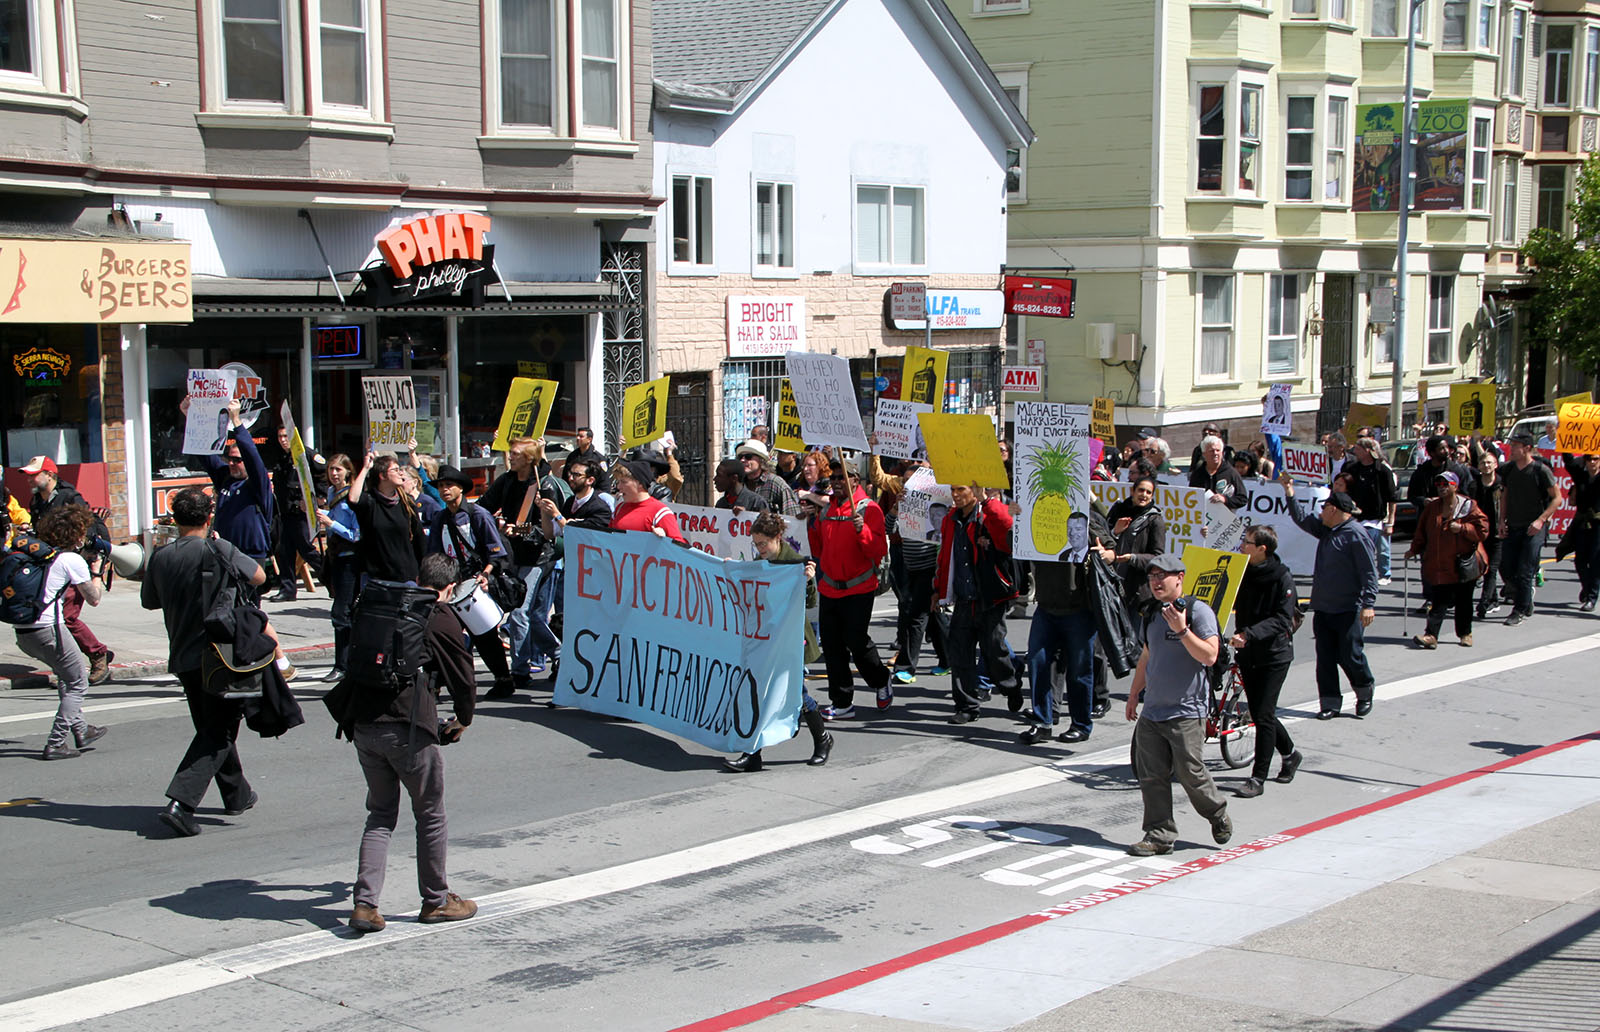 Demonstrators march on 24th Street to protest the eviction of Benito Santiago.